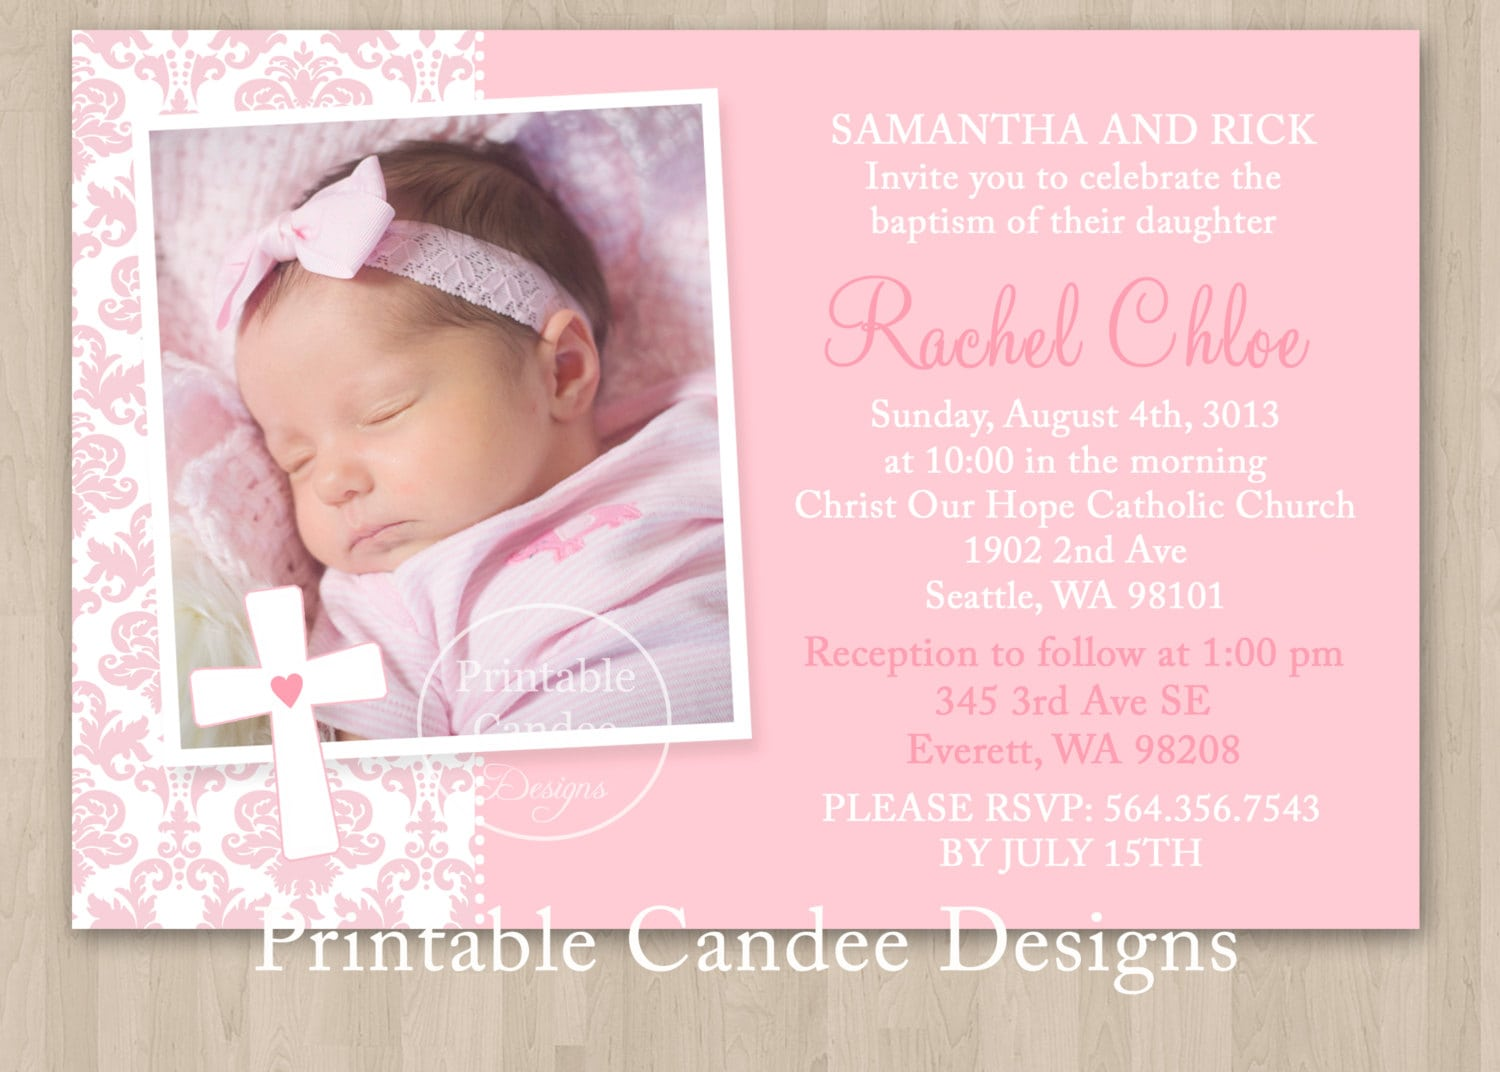 Free Quinceanera Invitation Maker with luxury invitation example